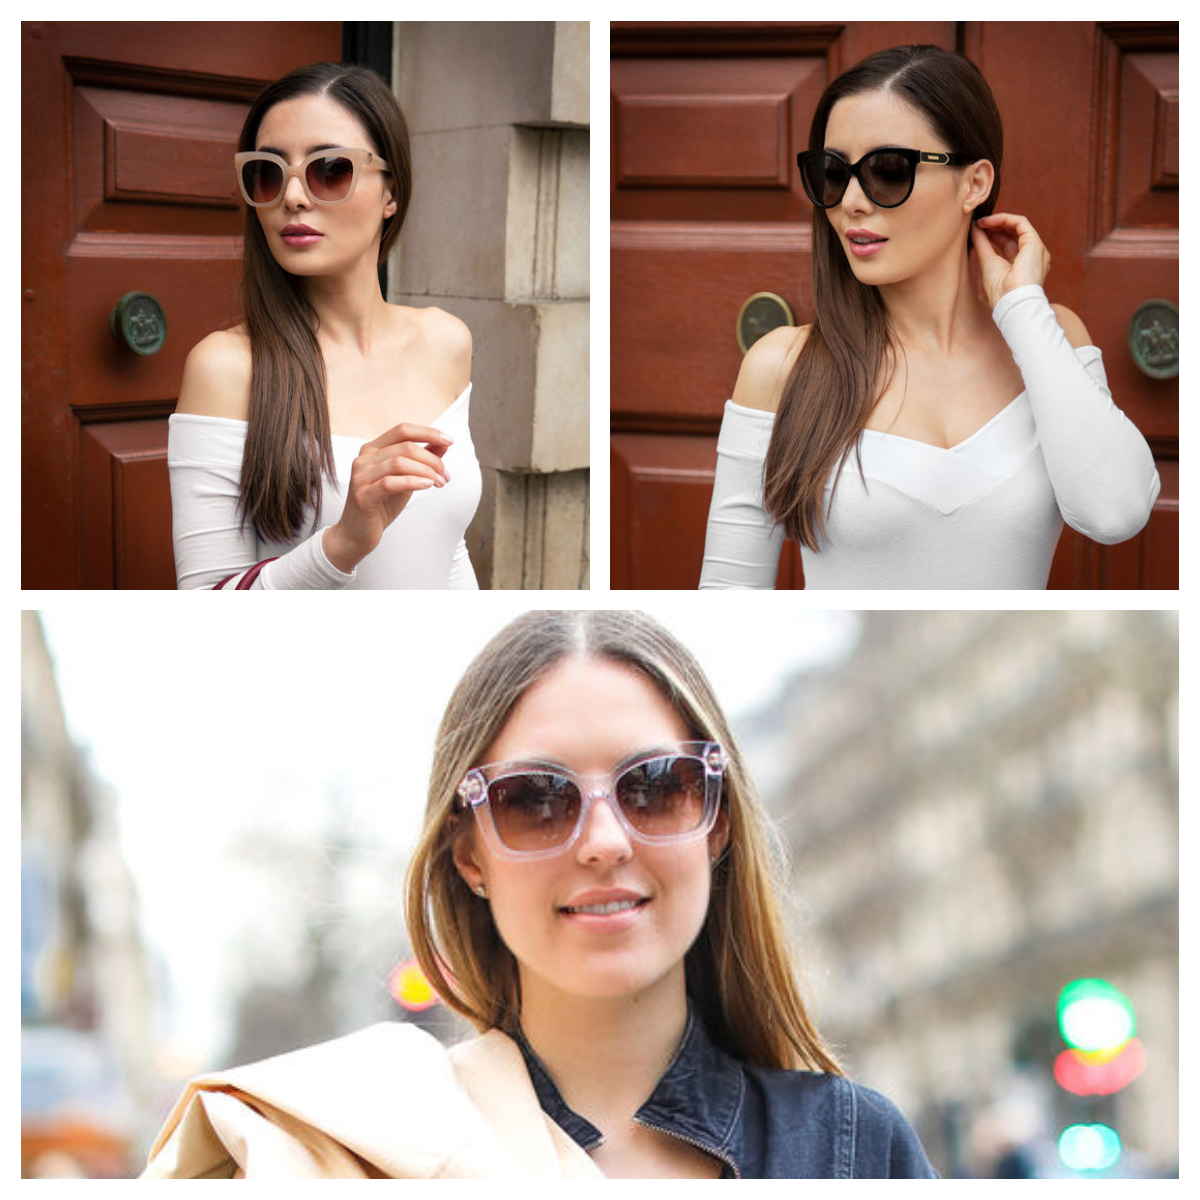 Aspinal of London Sunglasses new for this year, as endorsed by brand ambassador Kate Middleton DoC